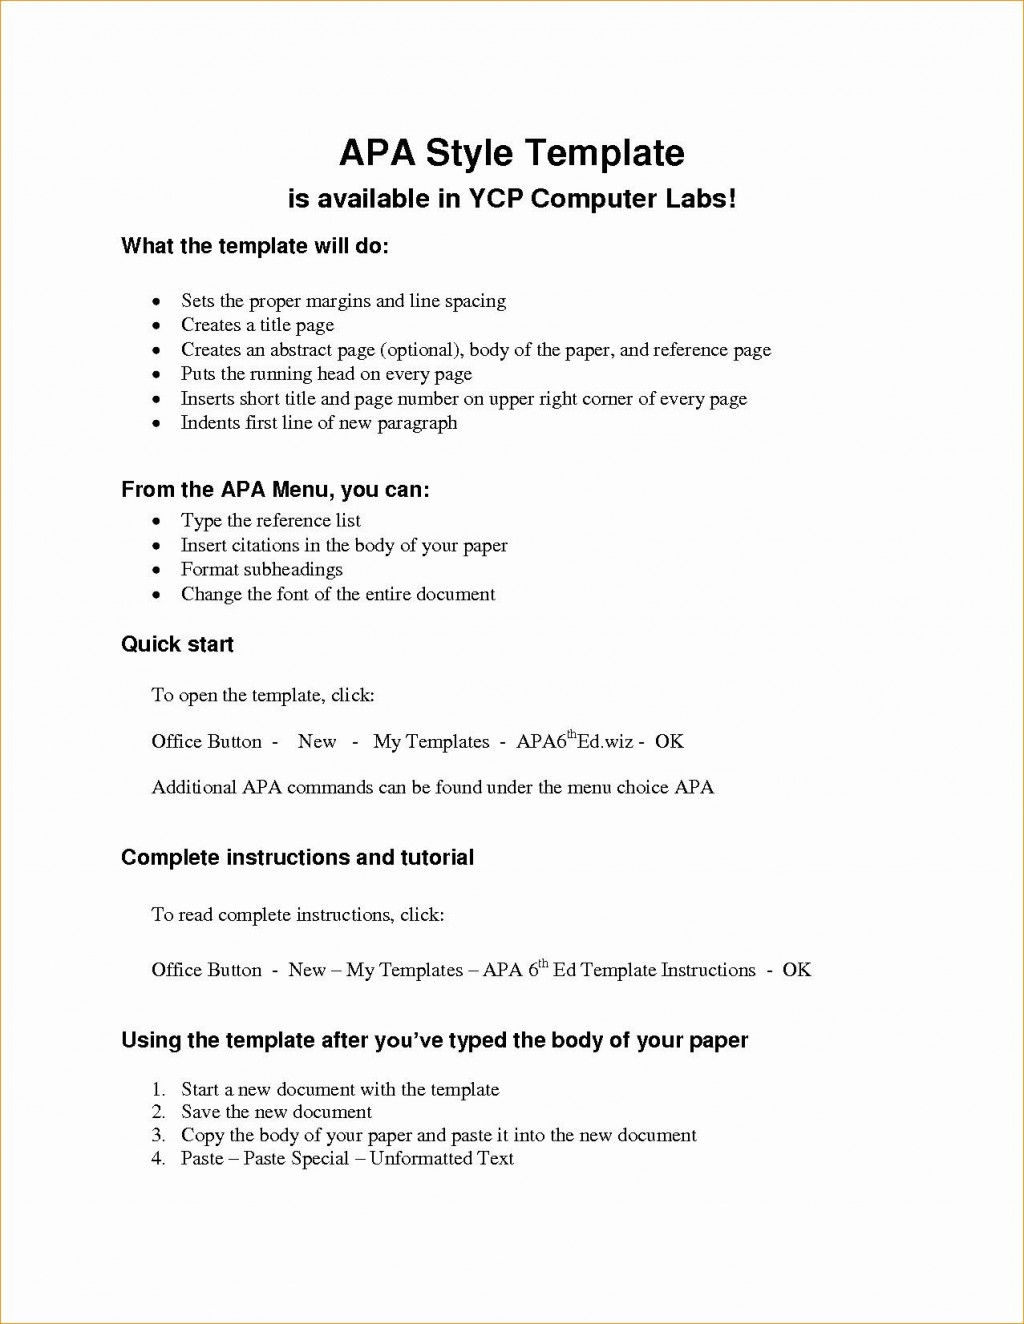 016 Research Paper Cover Letter Apa Style Template Awesome Beautiful Format For Resume Best Fresh Fascinating Large